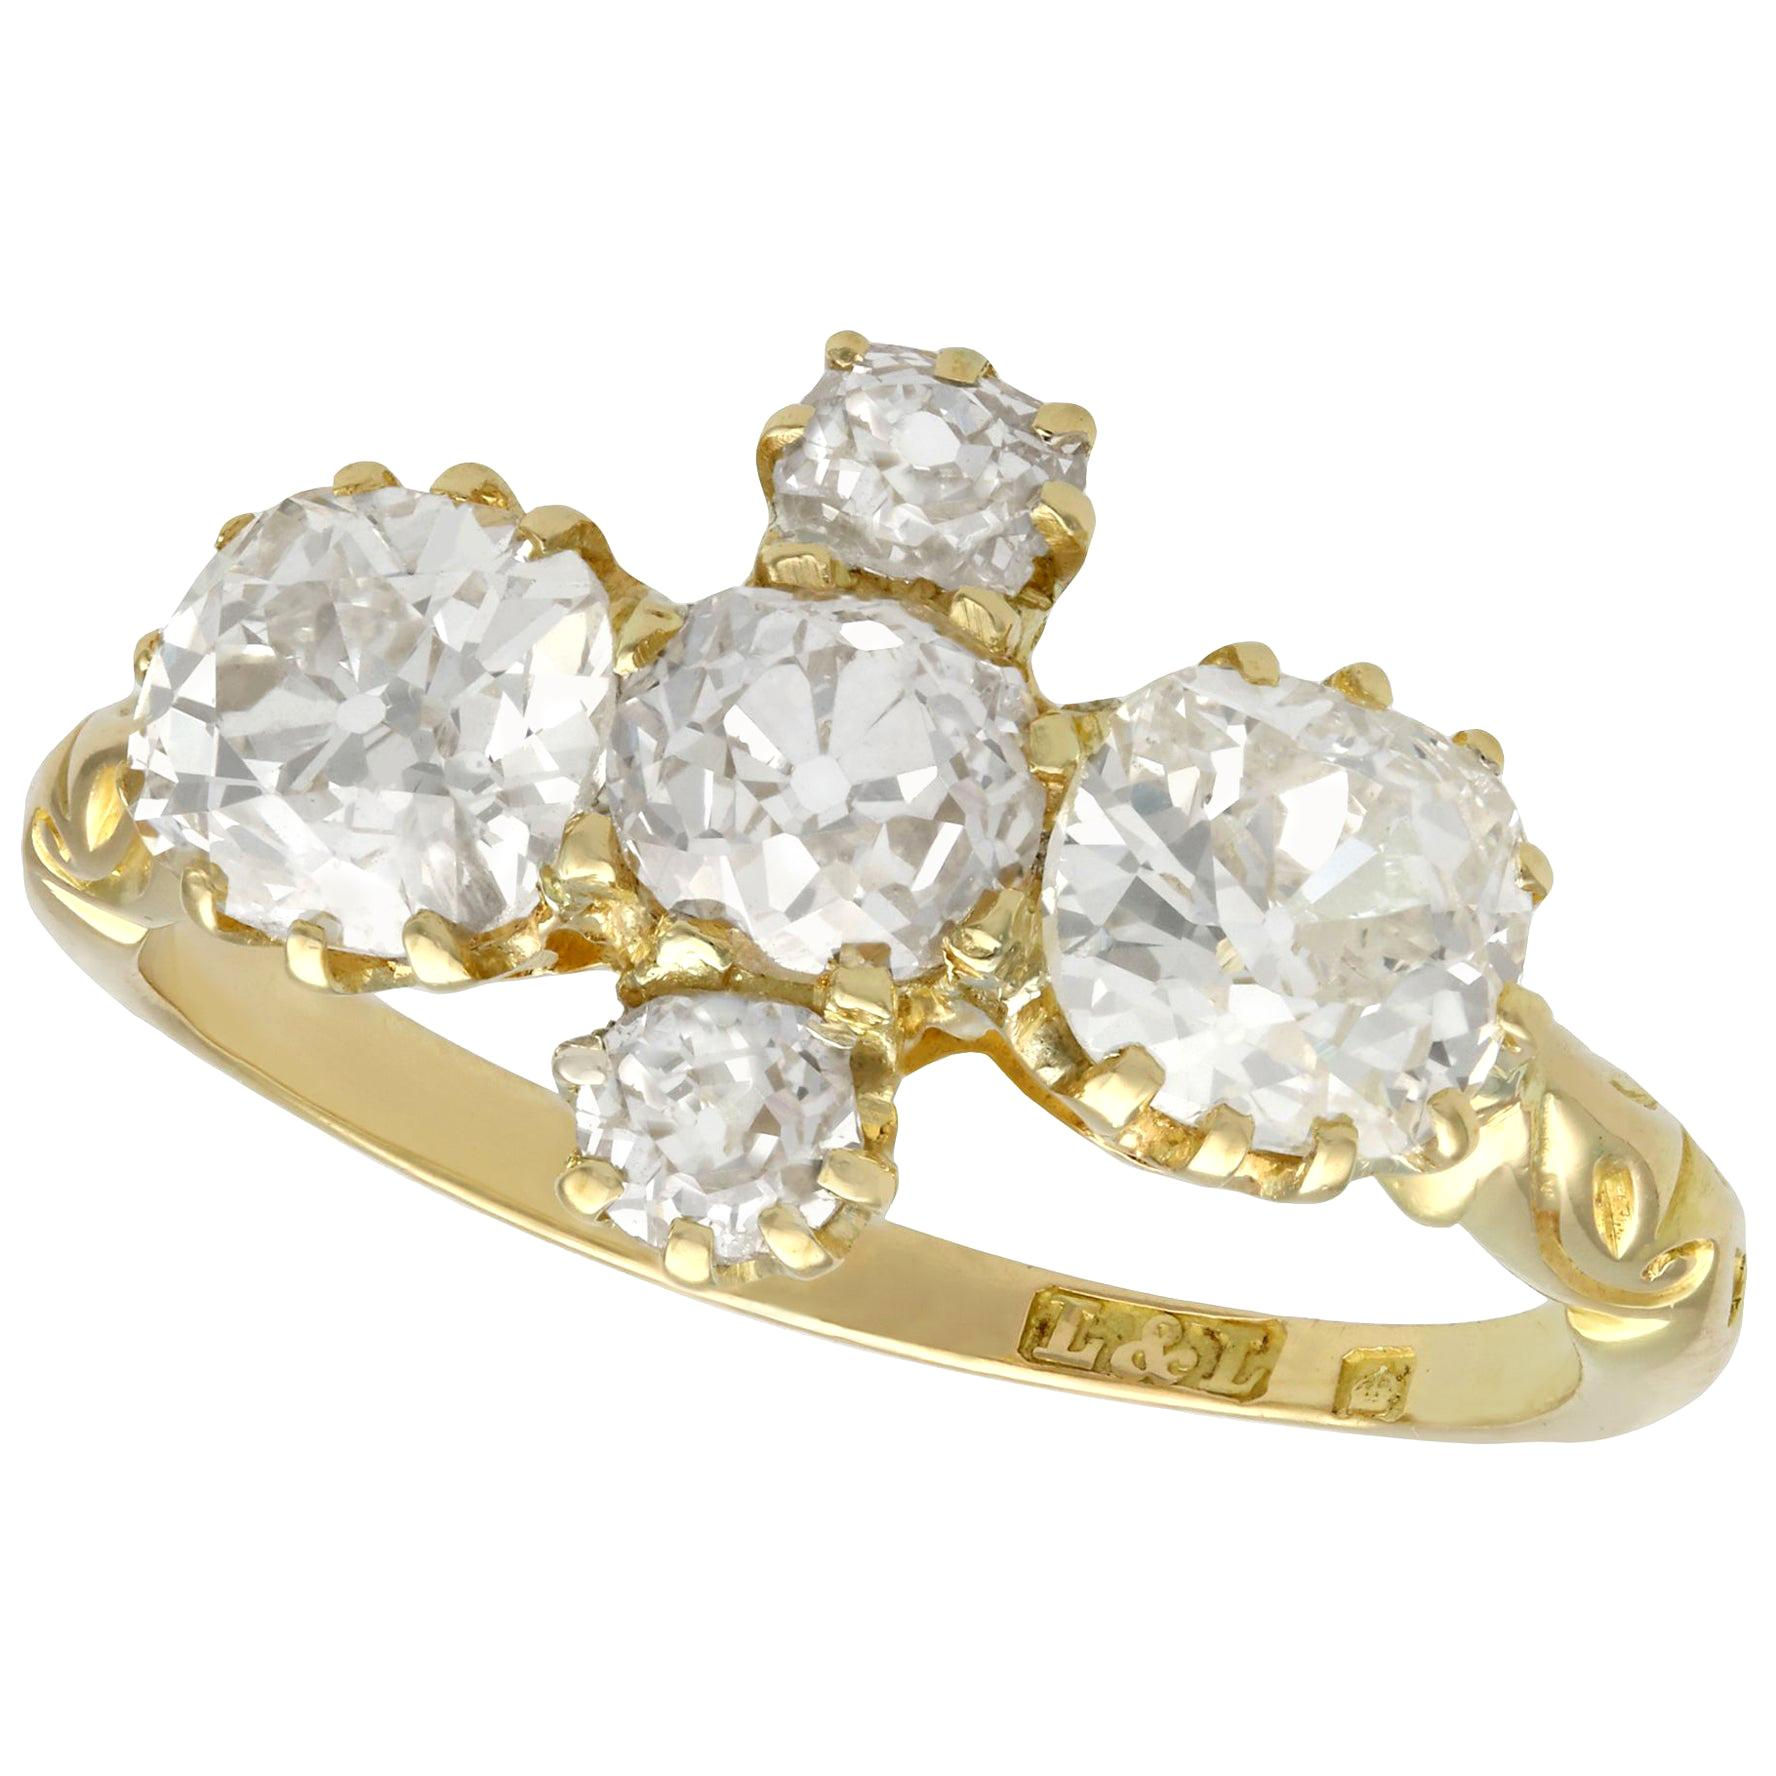 Antique Victorian Diamond and Yellow Gold Engagement Ring Circa 1890